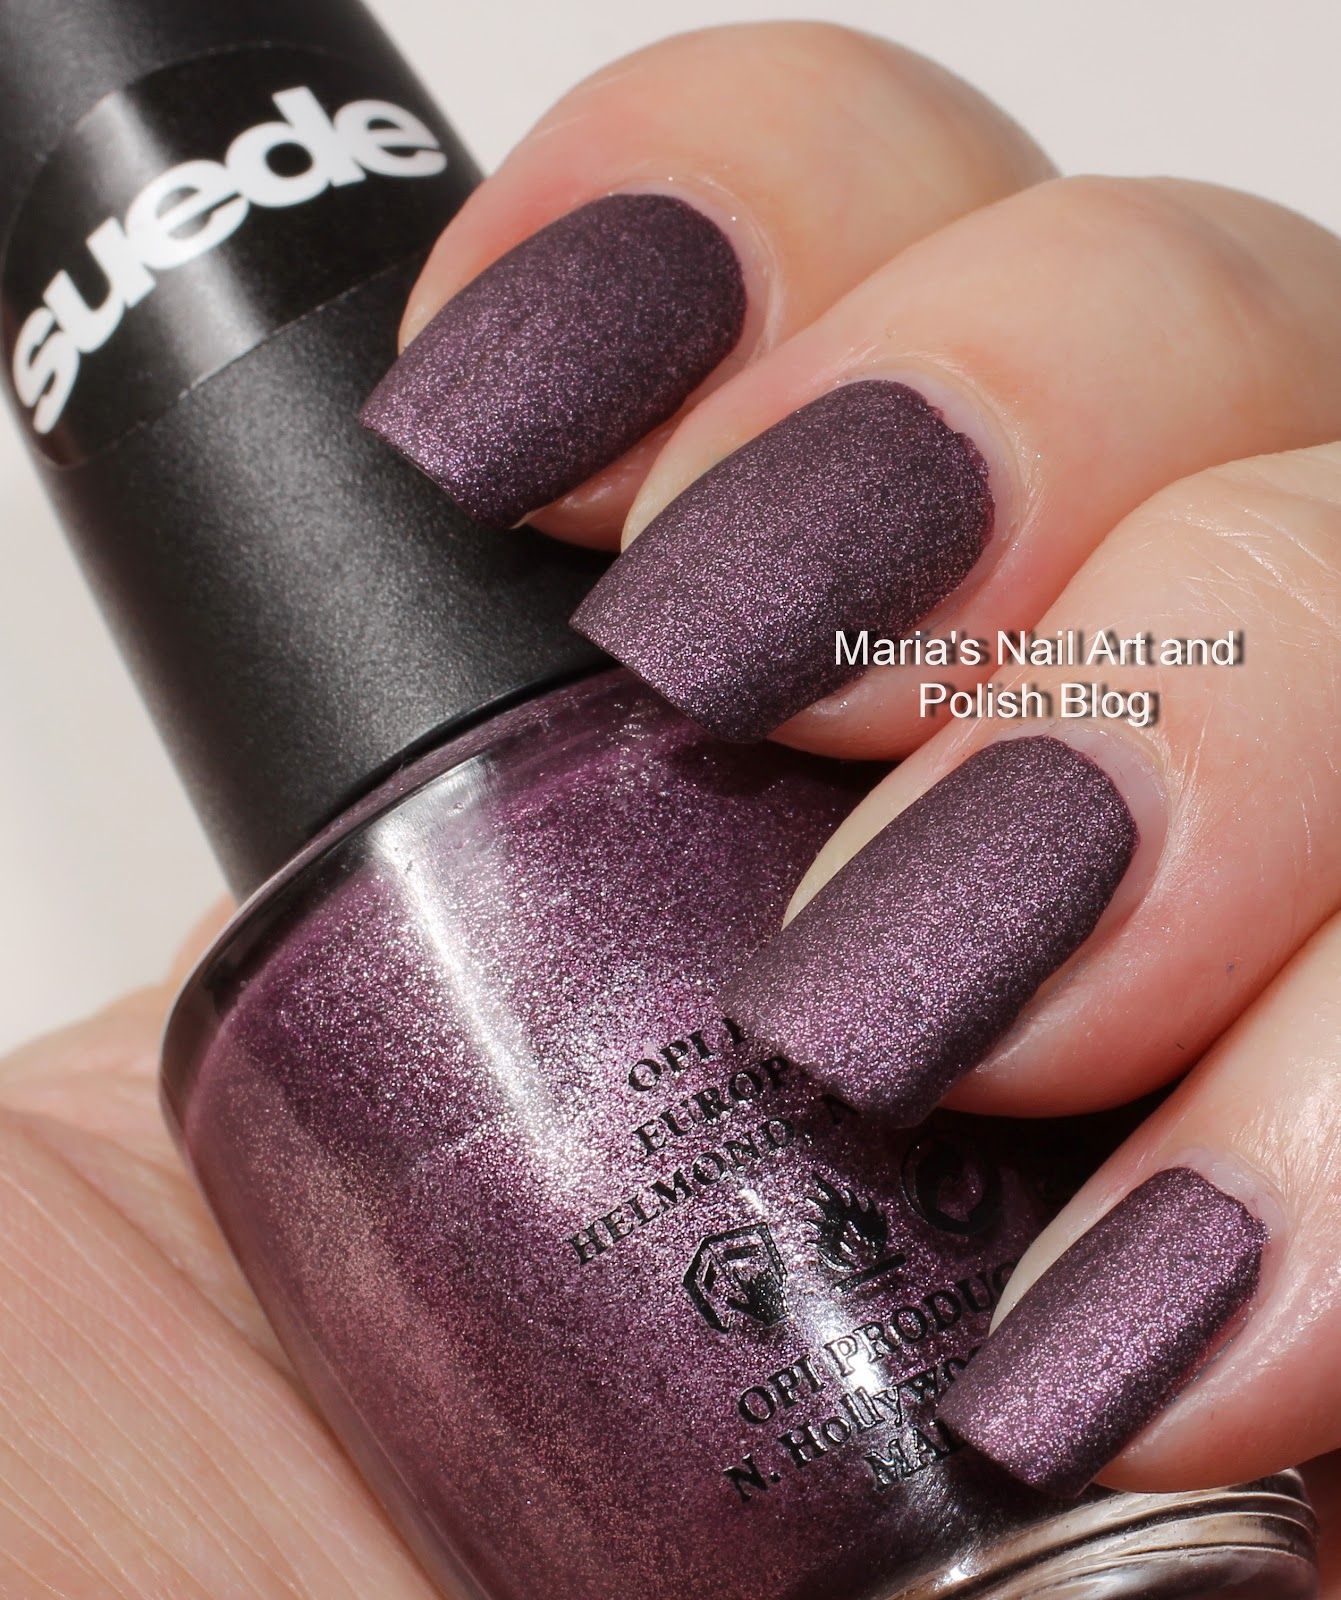 Marias Nail Art and Polish Blog: OPI Lincoln Park After Dark Suede ...